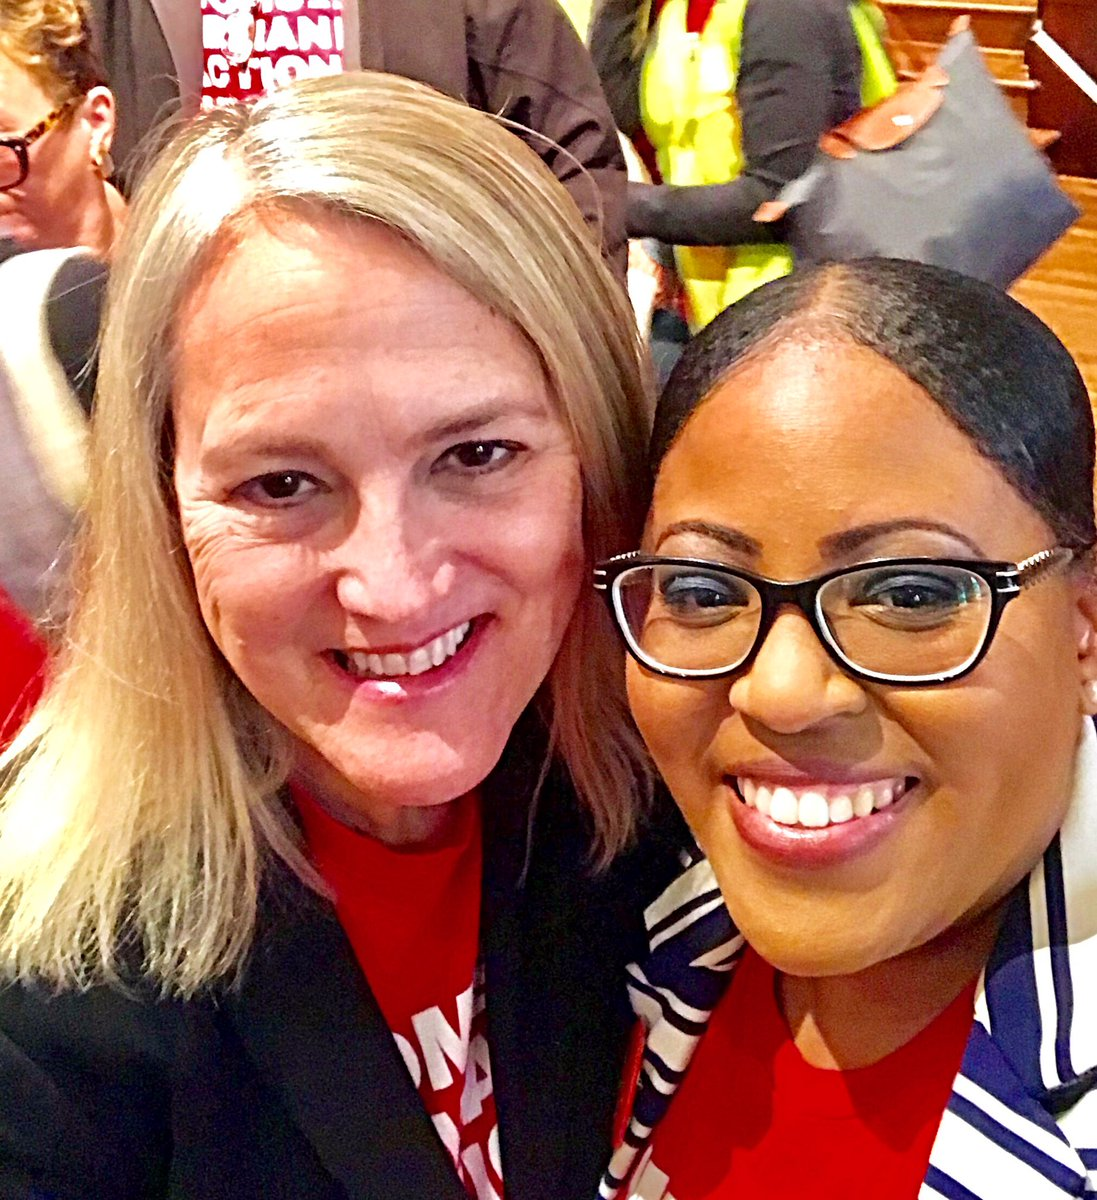 Gun violence survivor, Moms Demand Action GA Volunteer @ForeverJaJuan_J  fuels her pain into action to prevent gun violence. Her voice makes a difference and inspires others @MomsDemand @Everytown. With gratitude Julvonnia.